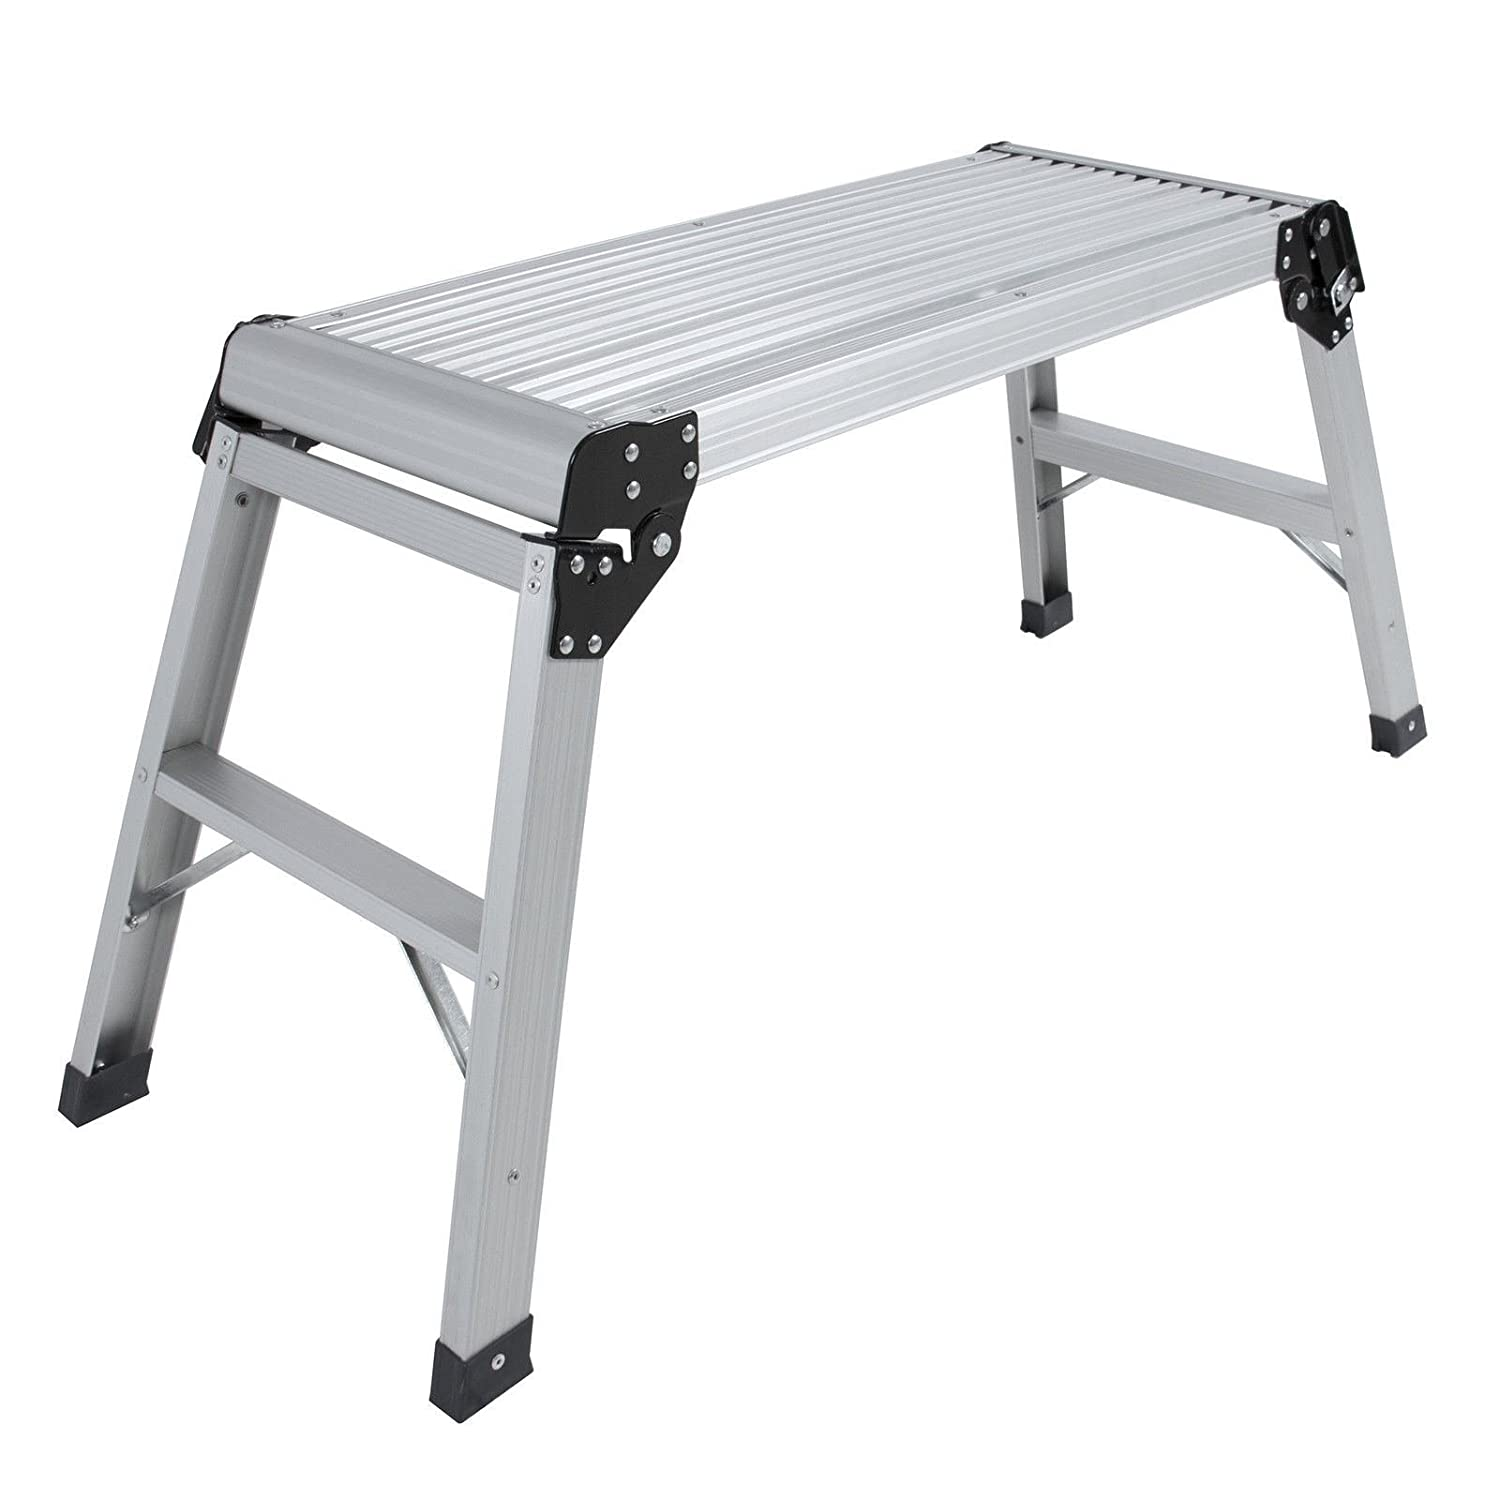 Top 10 Best Folding Step Stool Reviews in 2020 9